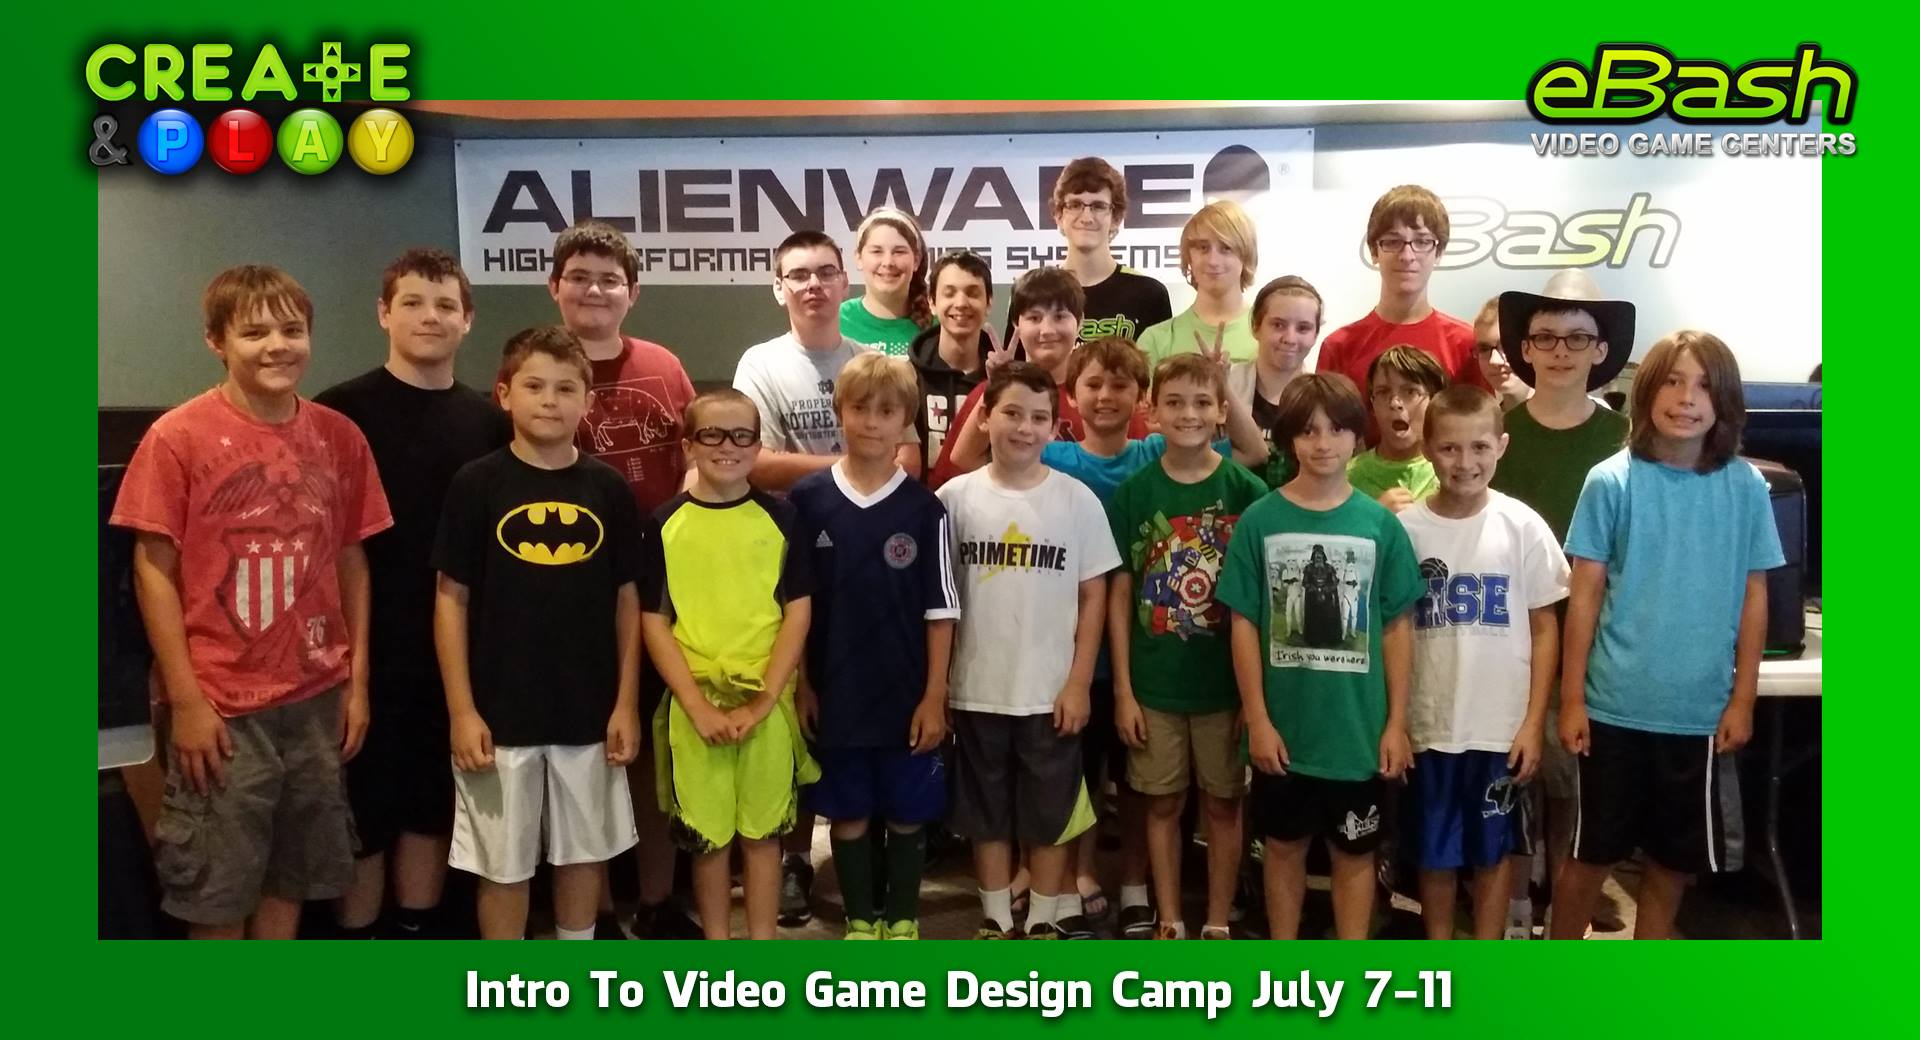 Intro To Video Game Design Camp July 7-11